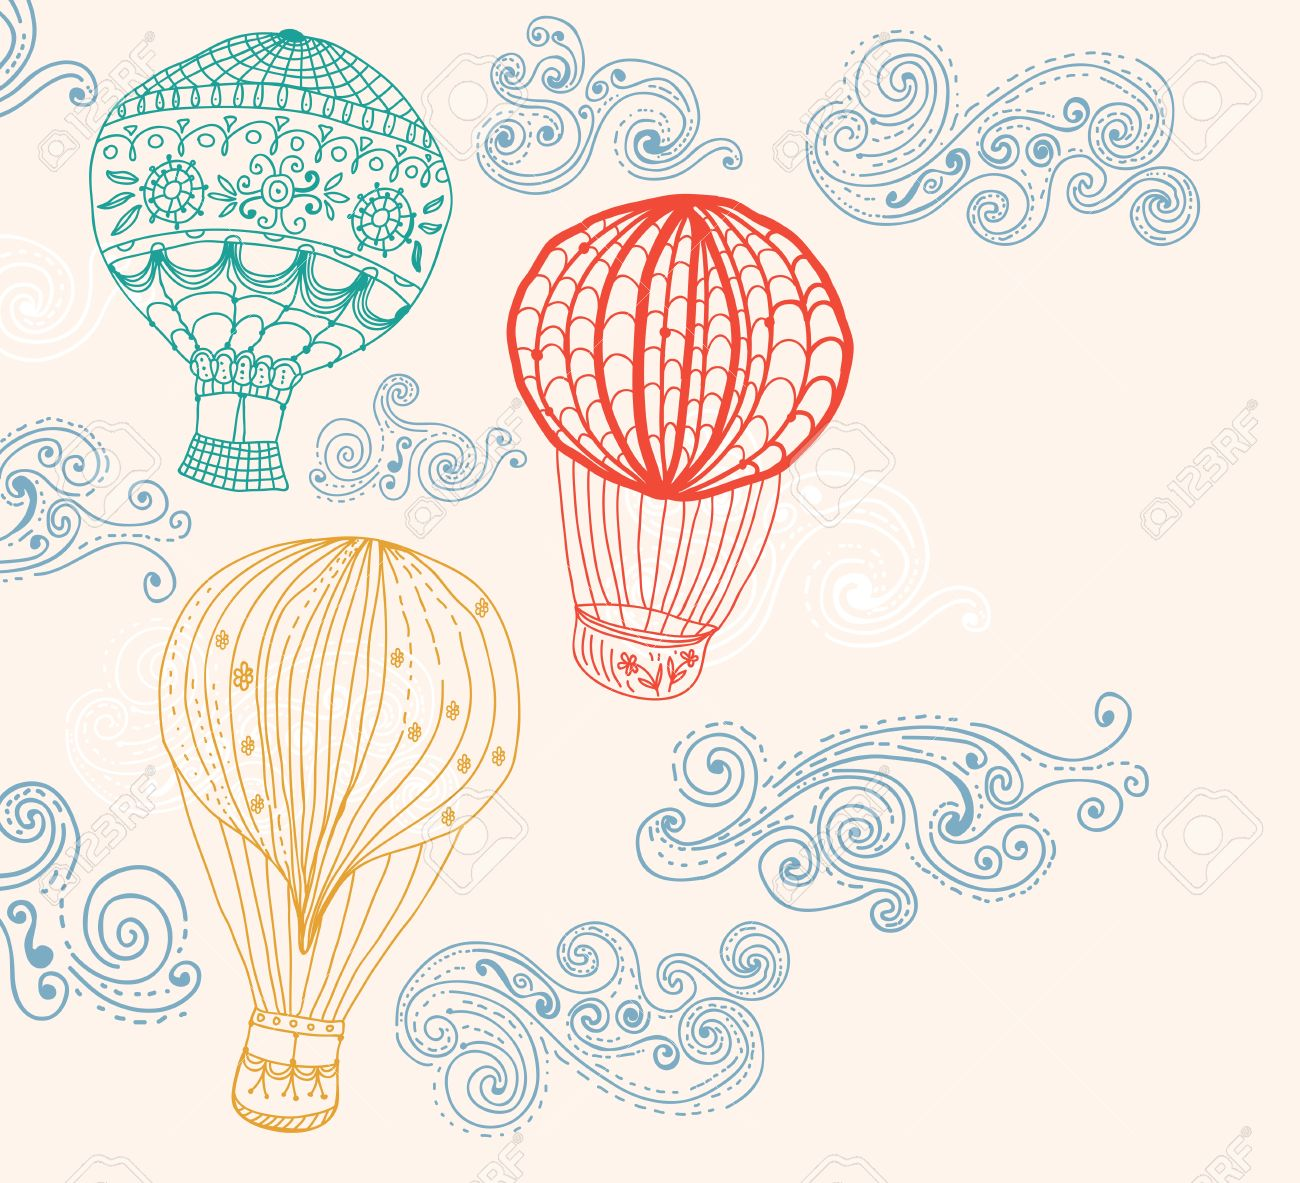 hot Air Balloon in sky, hand drawn Background for Design Stock Vector - 18423112